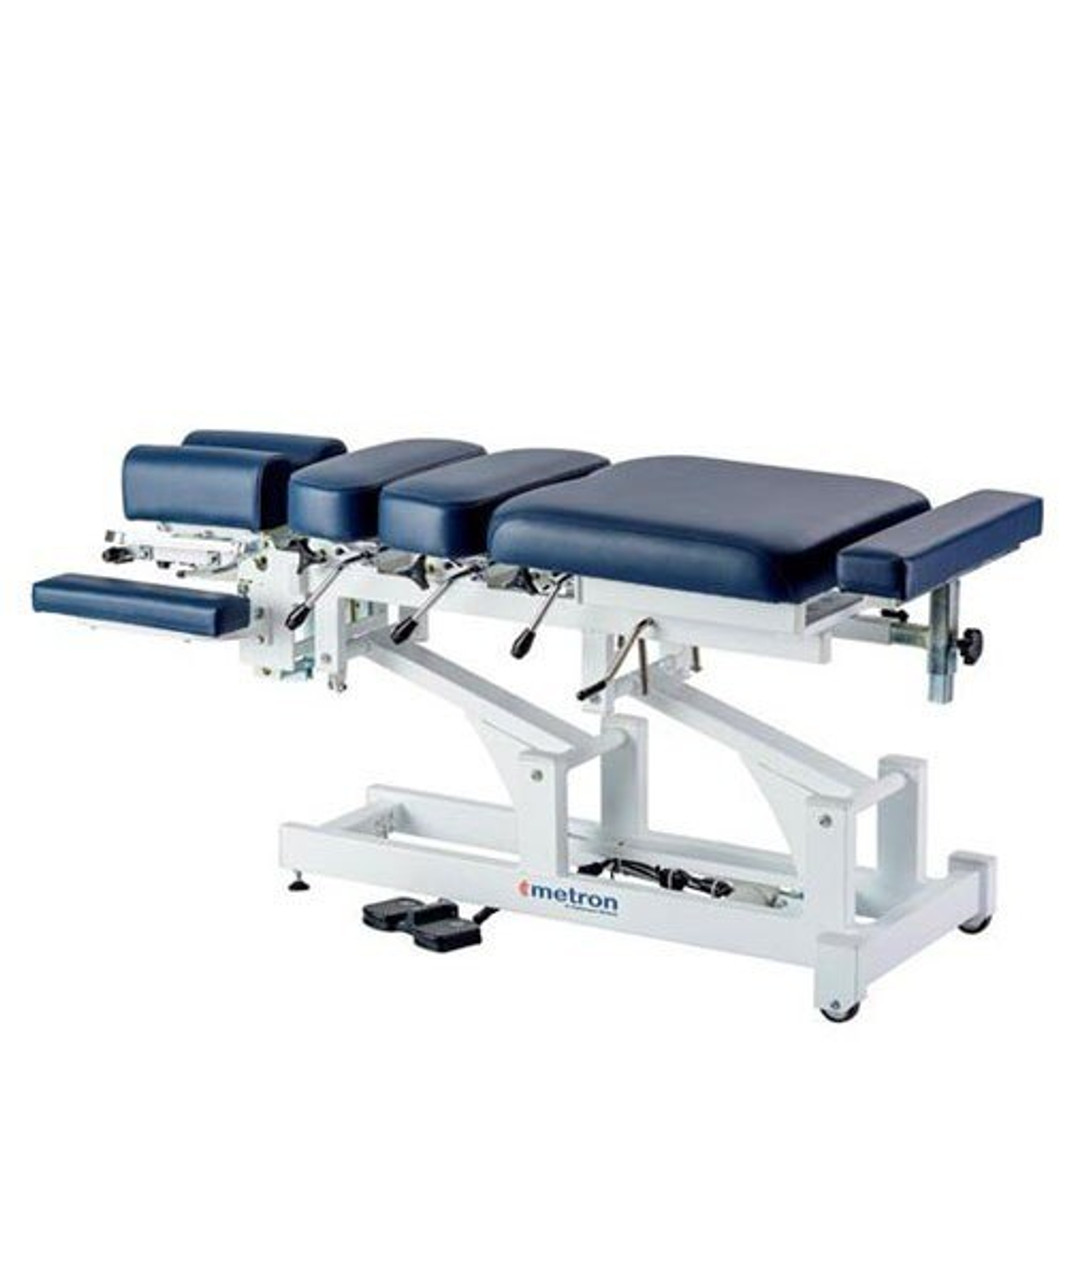 Metron Verti S Series Drop Table